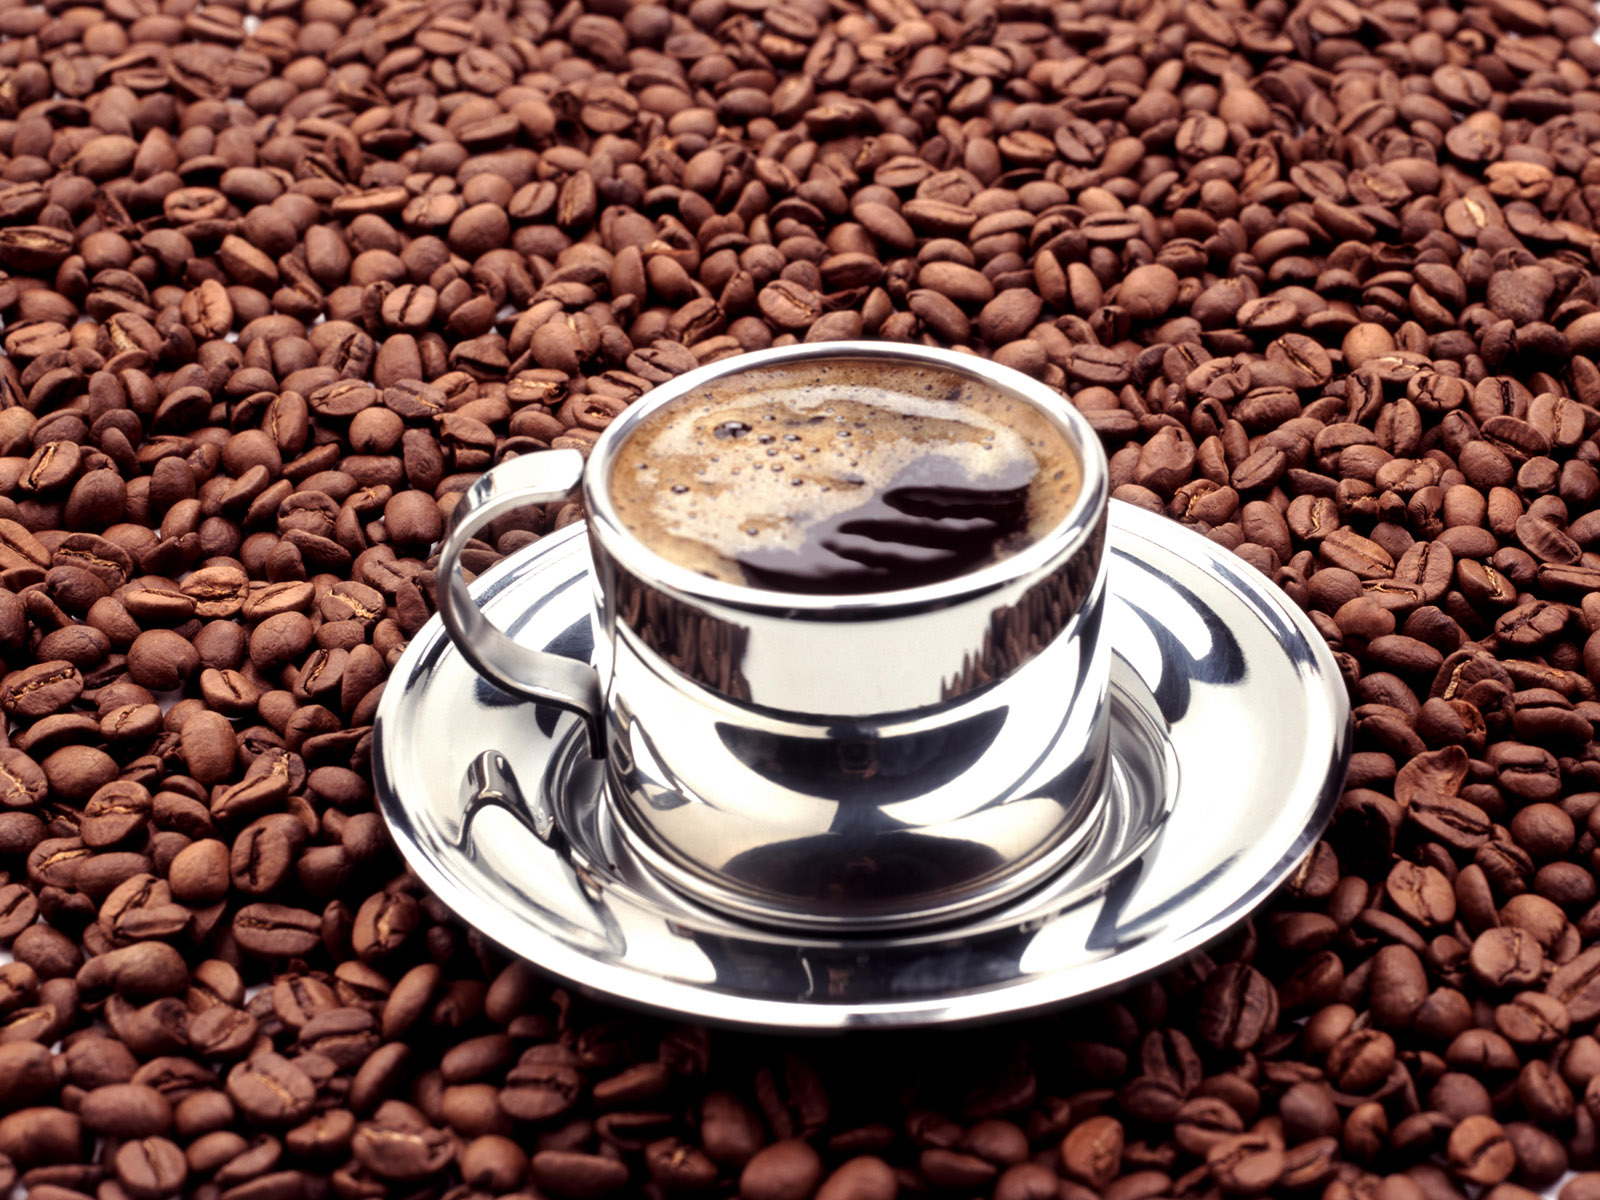 Coffee wallpaper high definition 11104